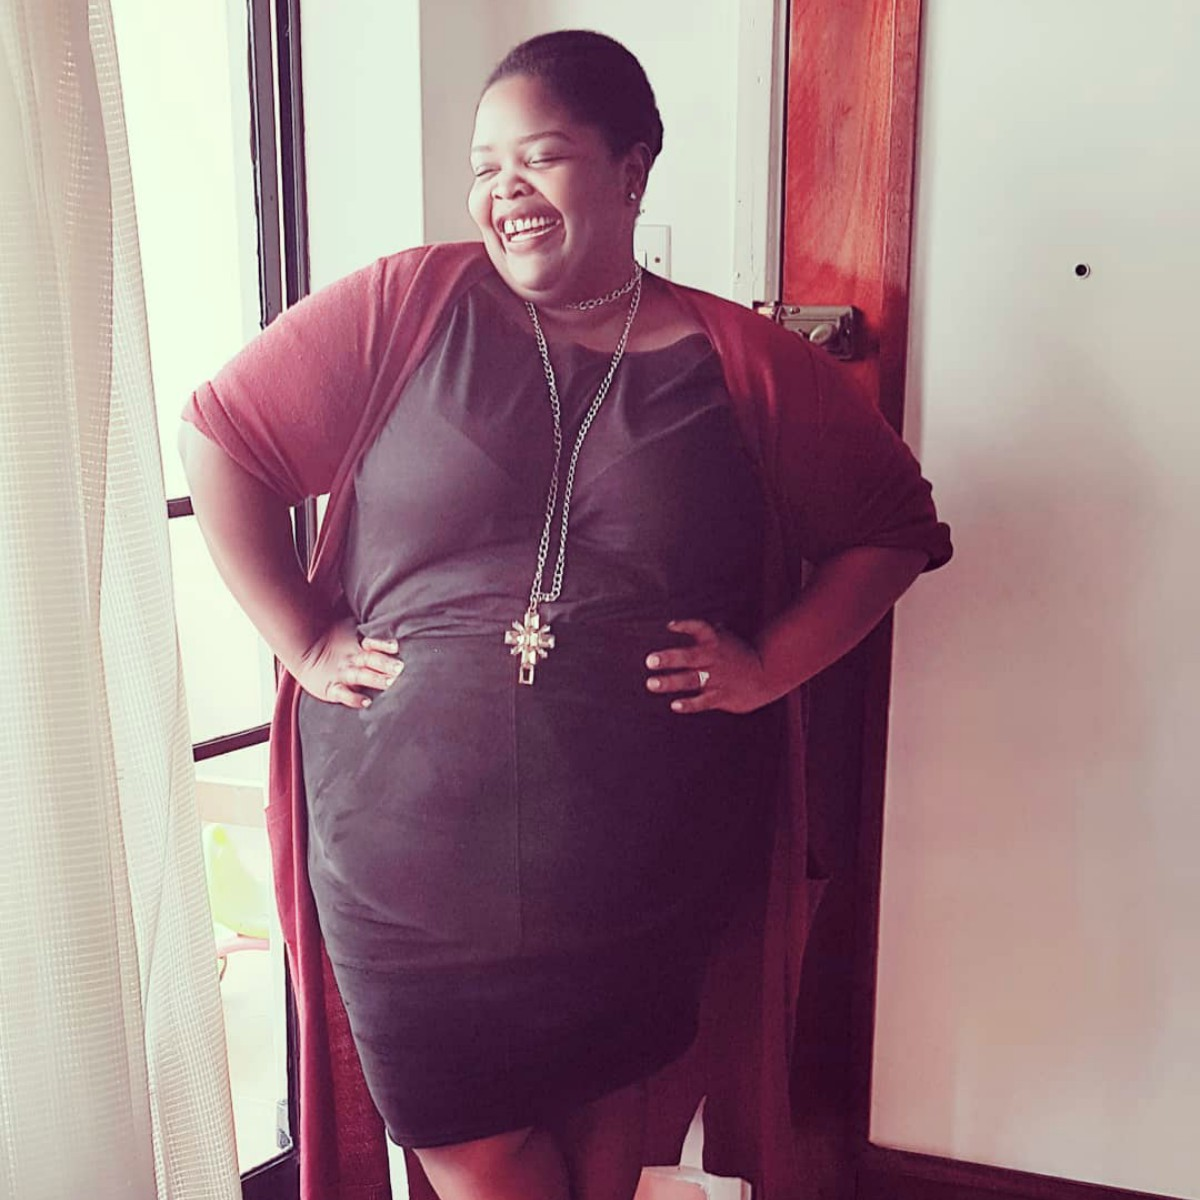 Linda nyangweso kiss - 'I wanted to commit suicide,' Lynda Nyangweso talks about cyber-bullying